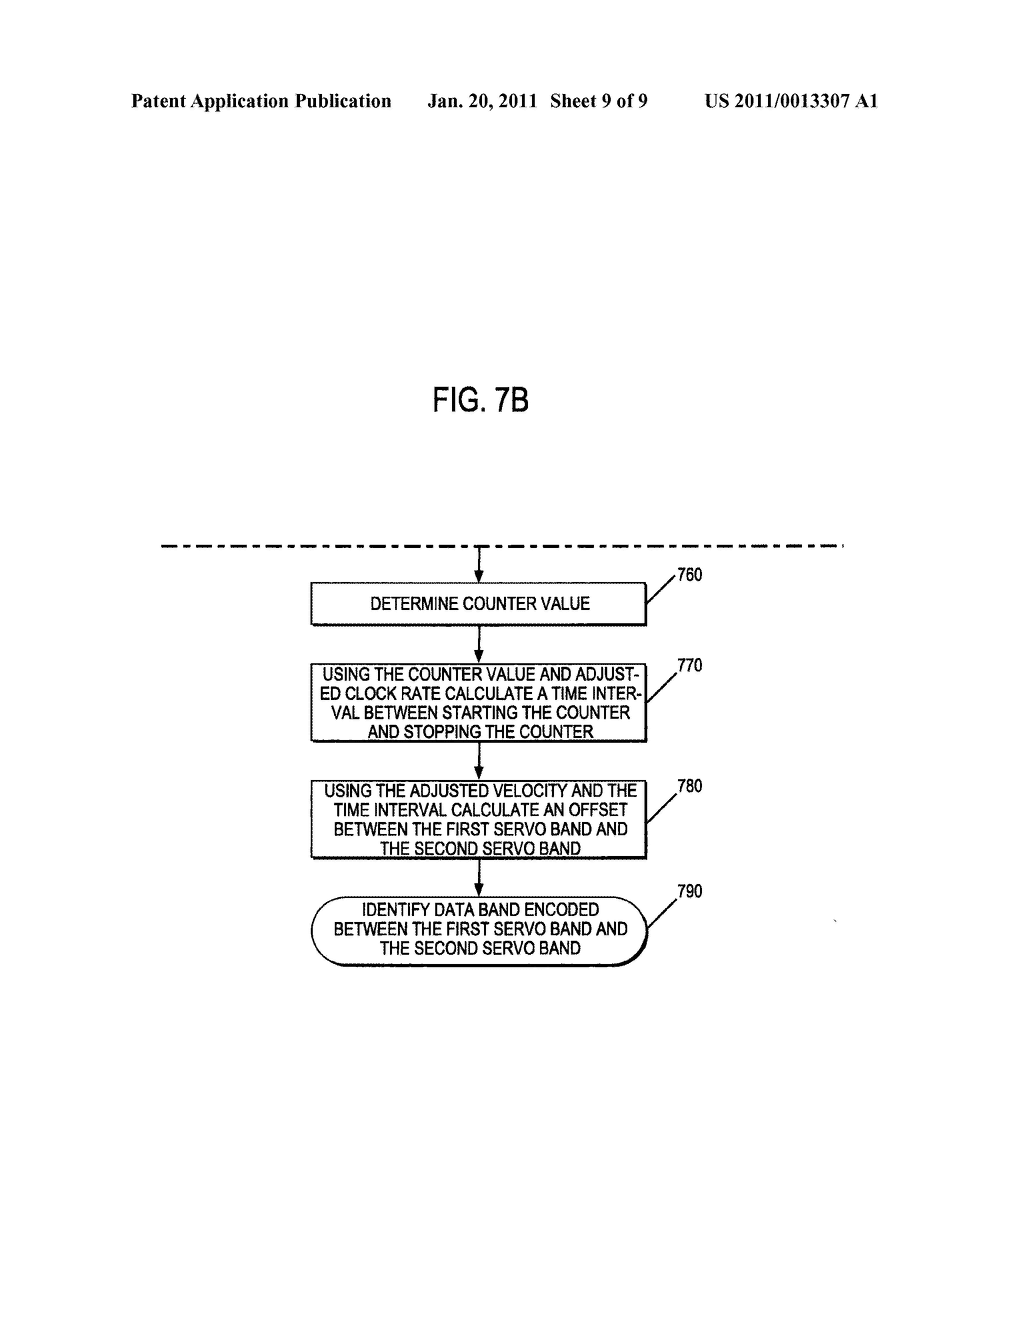 METHOD AND APPARATUS TO IDENTIFY A DATA BAND ENCODED BETWEEN TWO SERVO BANDS IN A SEQUENTIAL INFORMATION STORAGE MEDIUM - diagram, schematic, and image 10